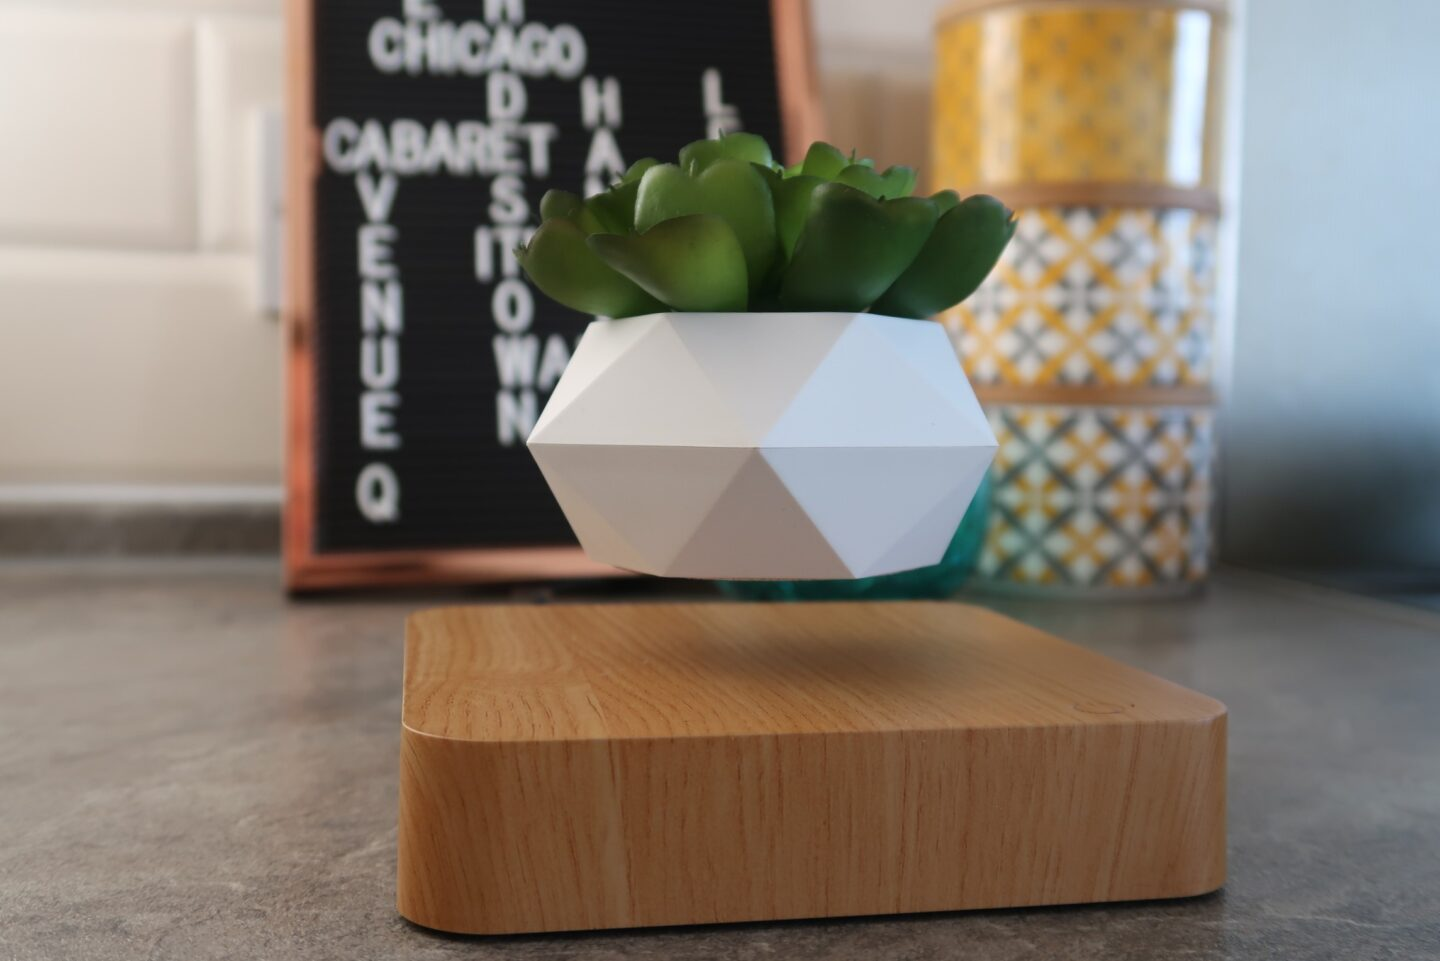 Add some magic to your home decor with Airsai Floately levitating plant pot